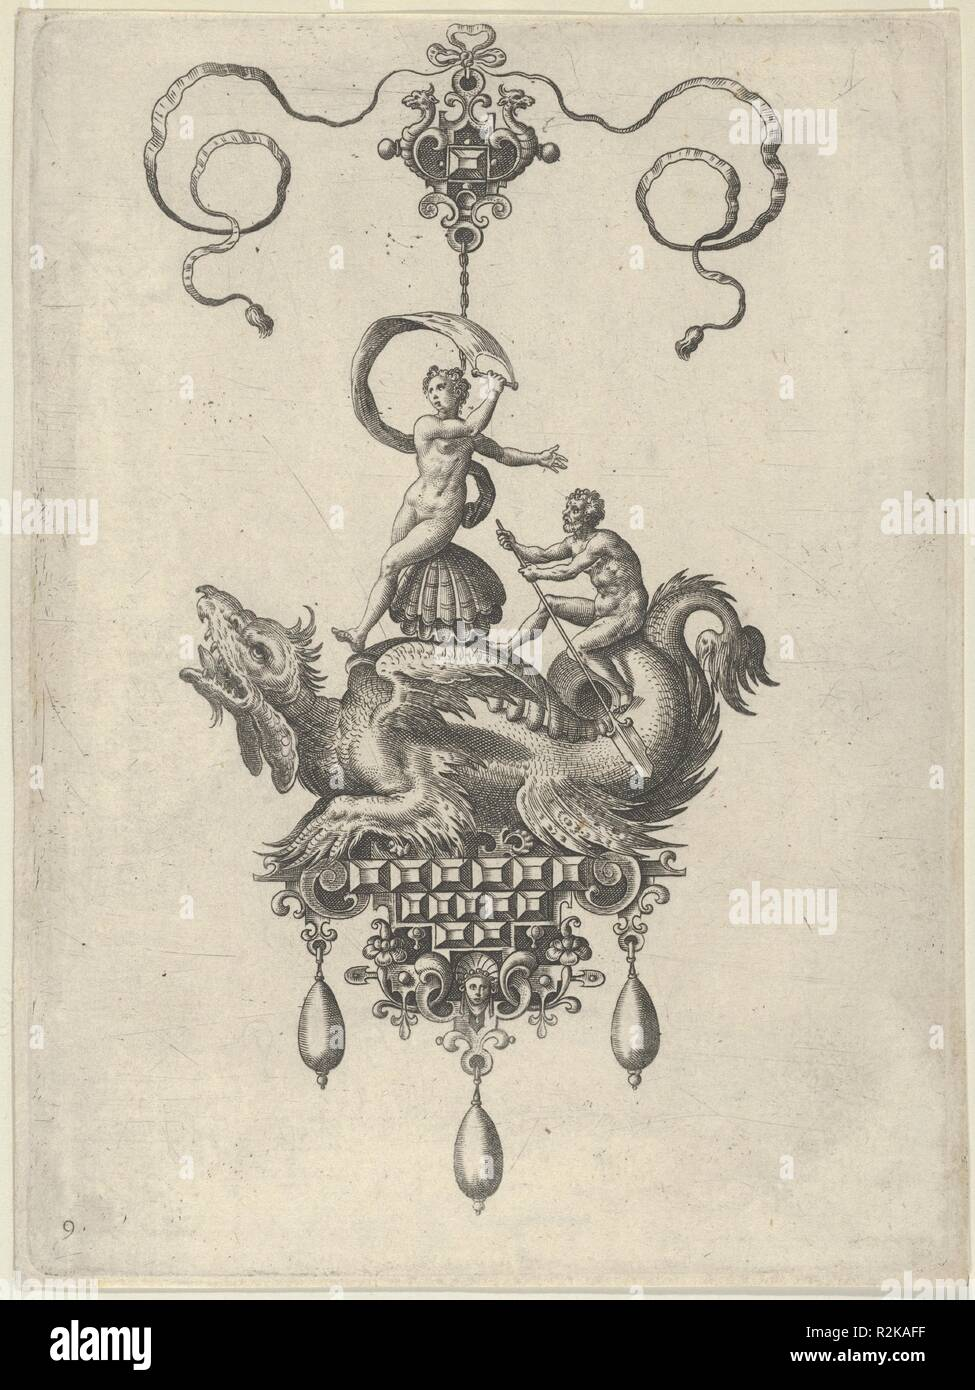 Pendant Design with a Winged Sea Monster Carrying Venus Anadyomene on a Shell and a Man with an Oar. Artist: Adriaen Collaert (Netherlandish, Antwerp ca. 1560-1618 Antwerp); after a design by Jan Collaert I (Netherlandish, Antwerp ca. 1530-1581 Antwerp). Dimensions: Sheet: 6 15/16 × 5 3/16 in. (17.7 × 13.2 cm). Publisher: published by Philips Galle (Netherlandish, Haarlem 1537-1612 Antwerp) , in Antwerp. Series/Portfolio: Designs for Pendants II. Date: 1582.  Vertical panel with a pendant in the shape of a sea monster carrying Neptune, who is seated on a shell and holds a sail in her right han - Stock Image